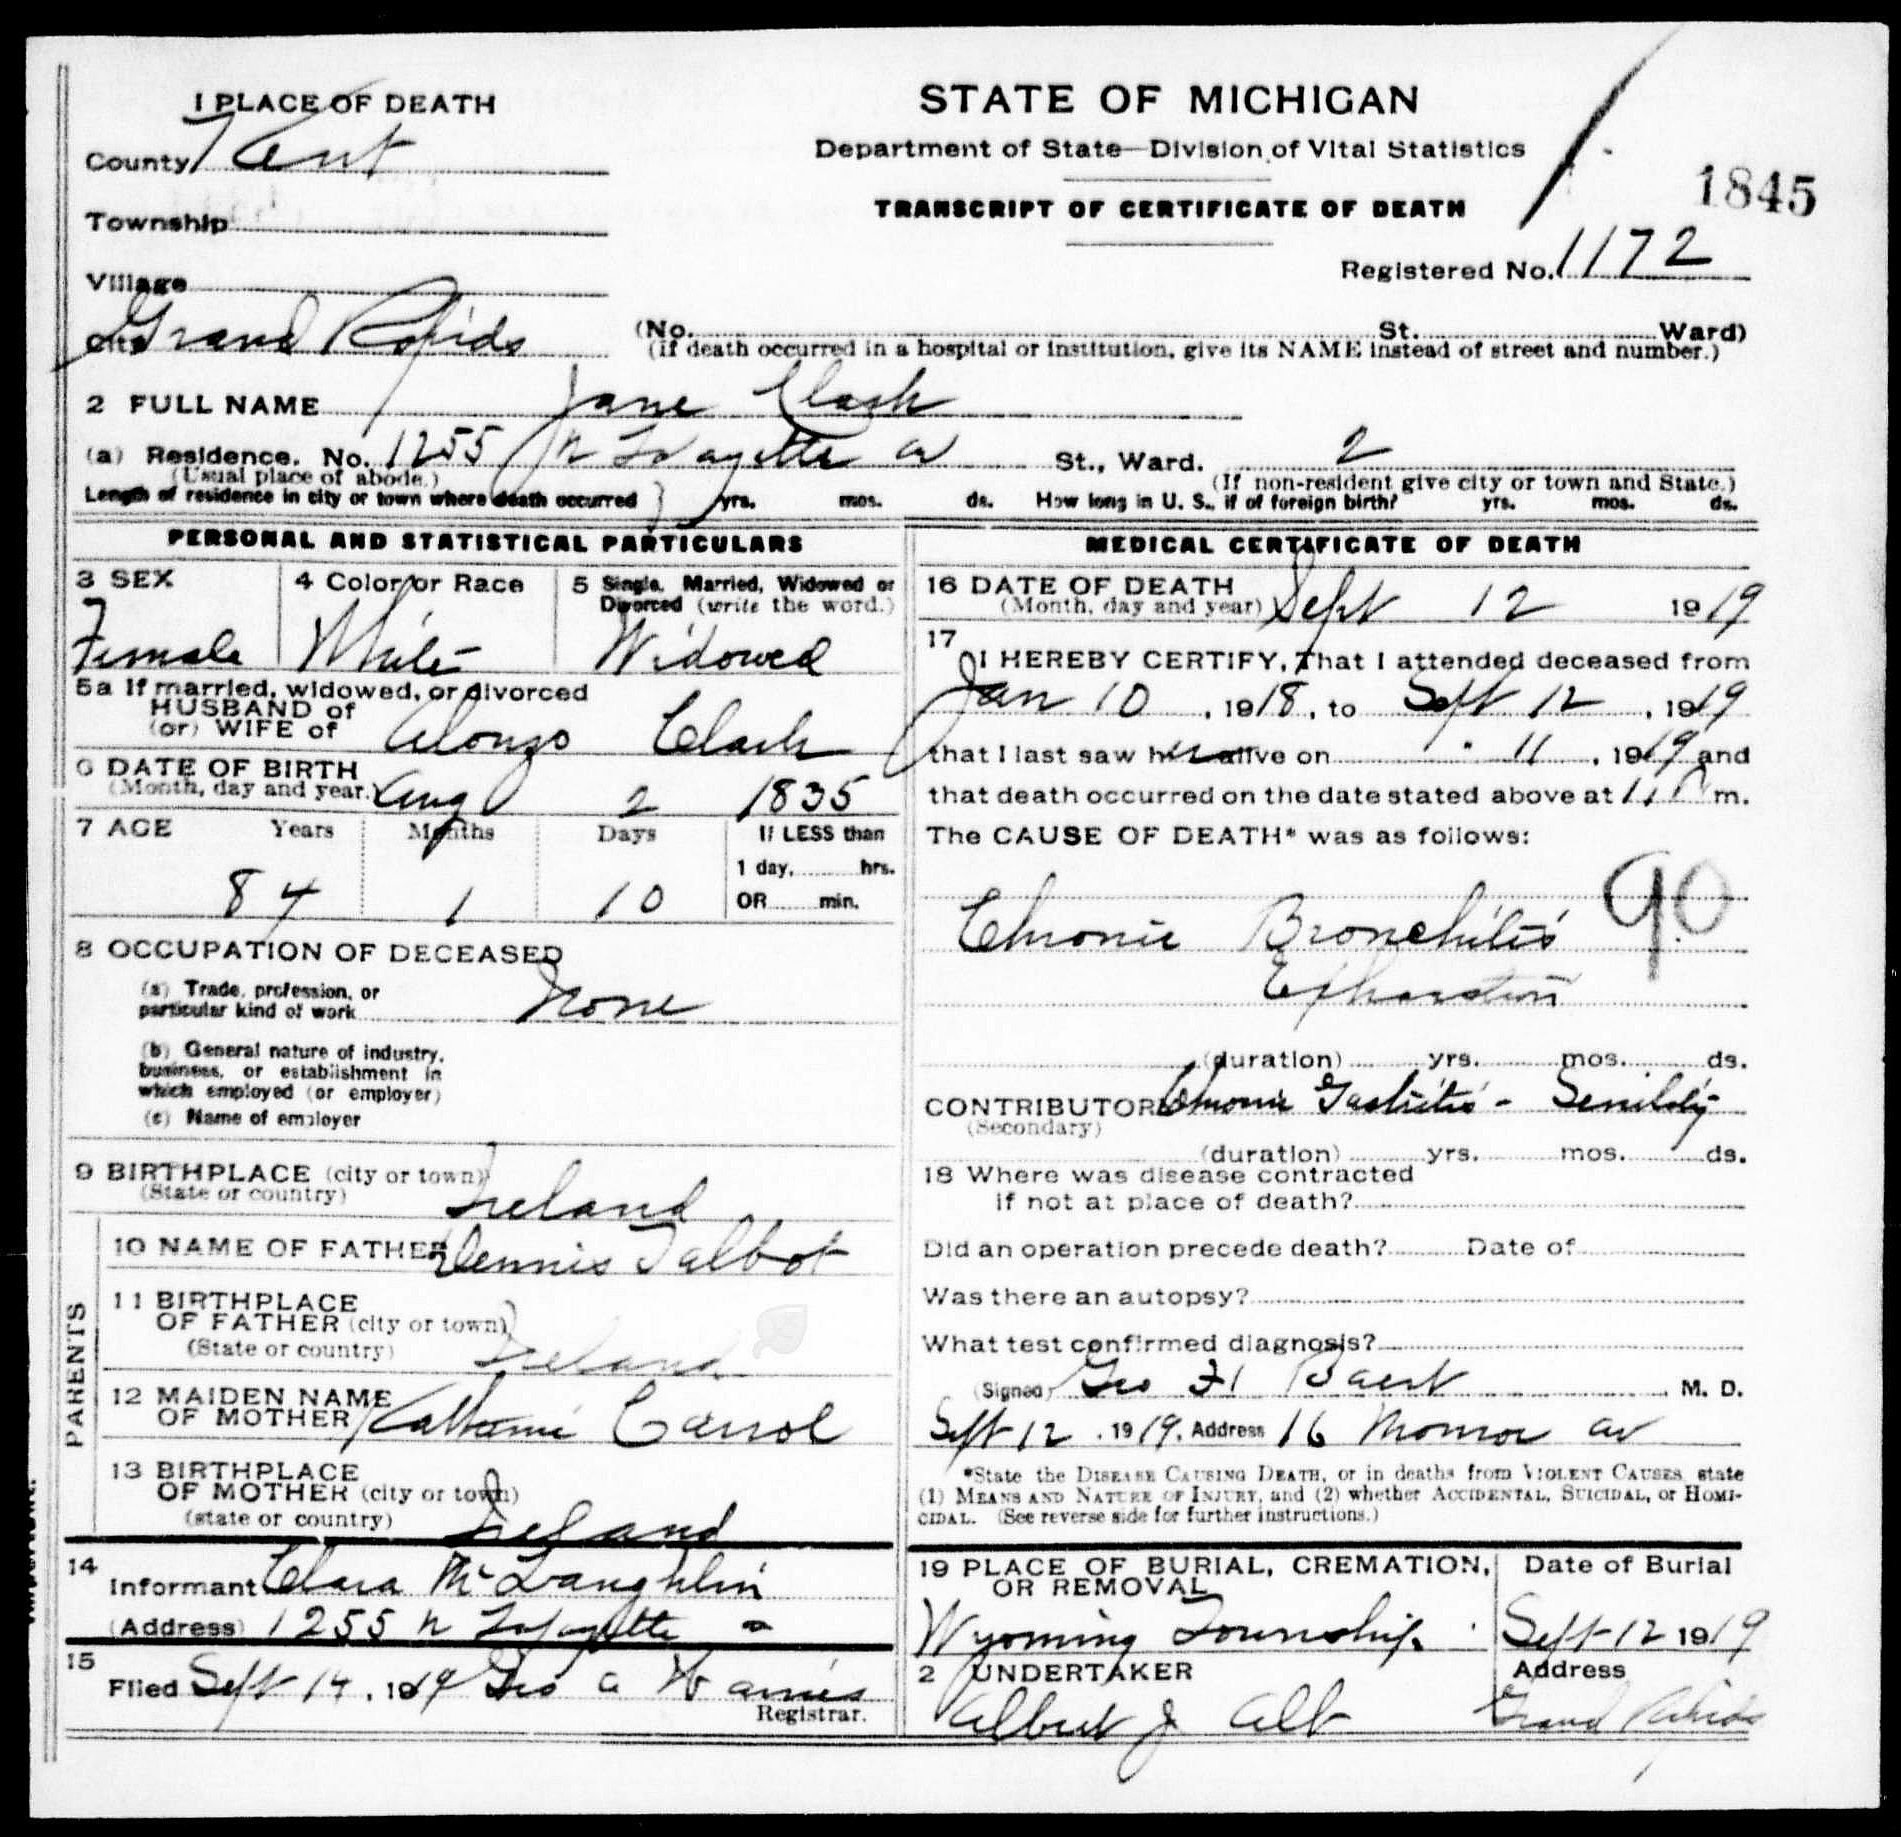 Jane elizabeth talbot clark 1835 1919 find a grave memorial death certificate of jane clark died 12 september 1919 at 1255 lafayette ave grand rapids 2nd ward kent county michigan death certificate found at xflitez Image collections